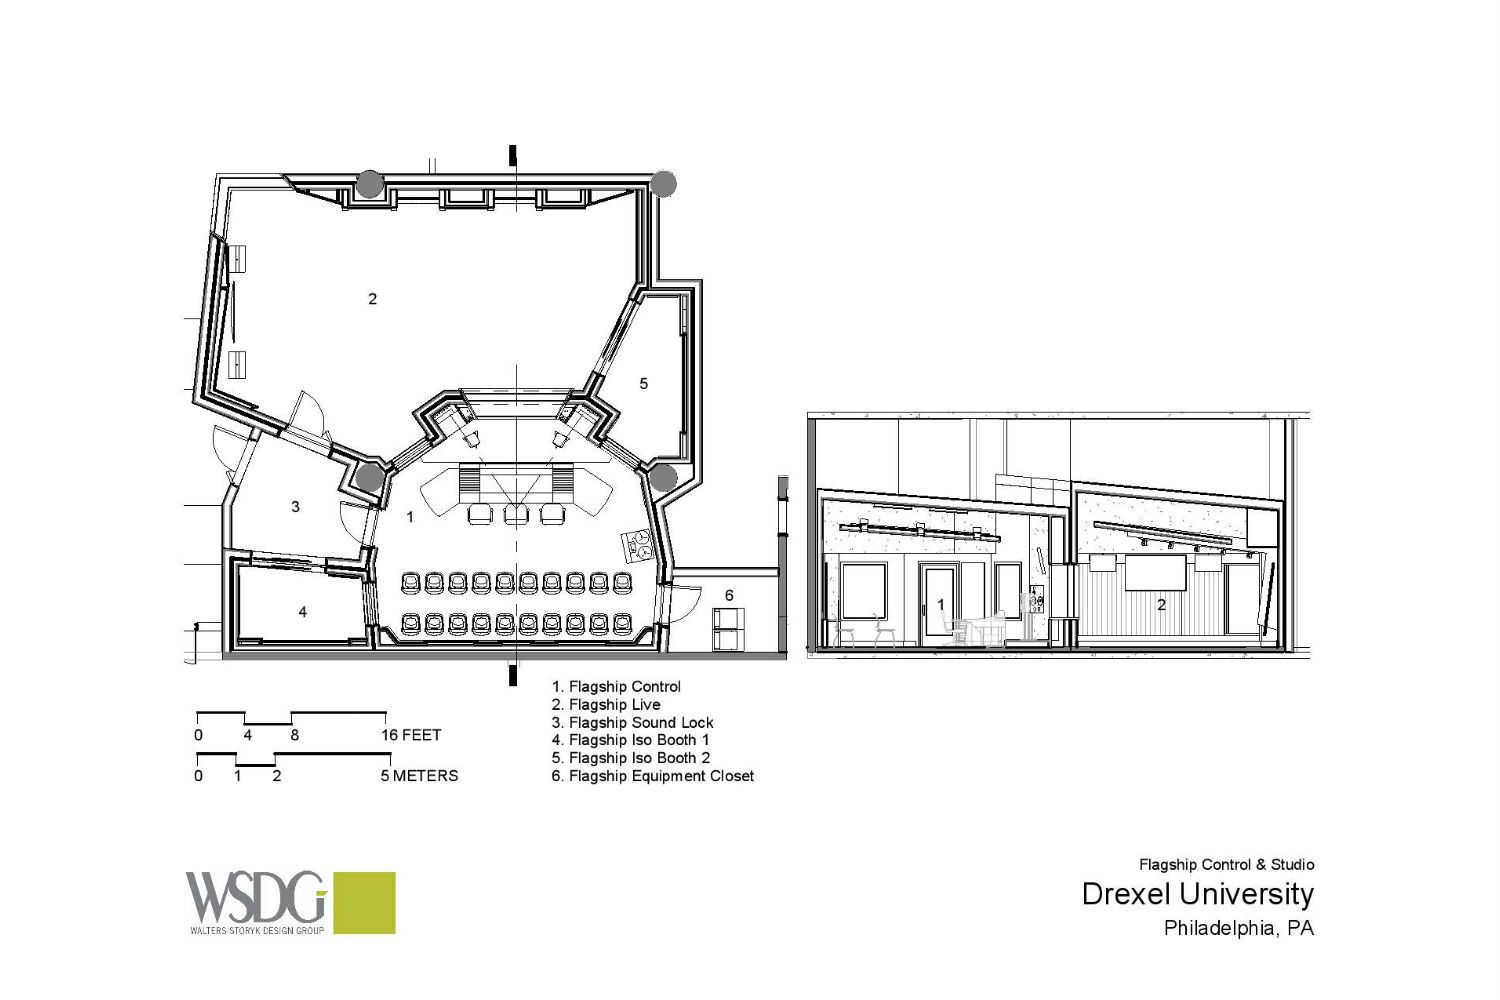 Drexel University in Philadelphia, PA is one of America's 15 largest universities. Their brand-new recording facilities, designed by the WSDG team, expands their music and recording program. Presentation drawing 2